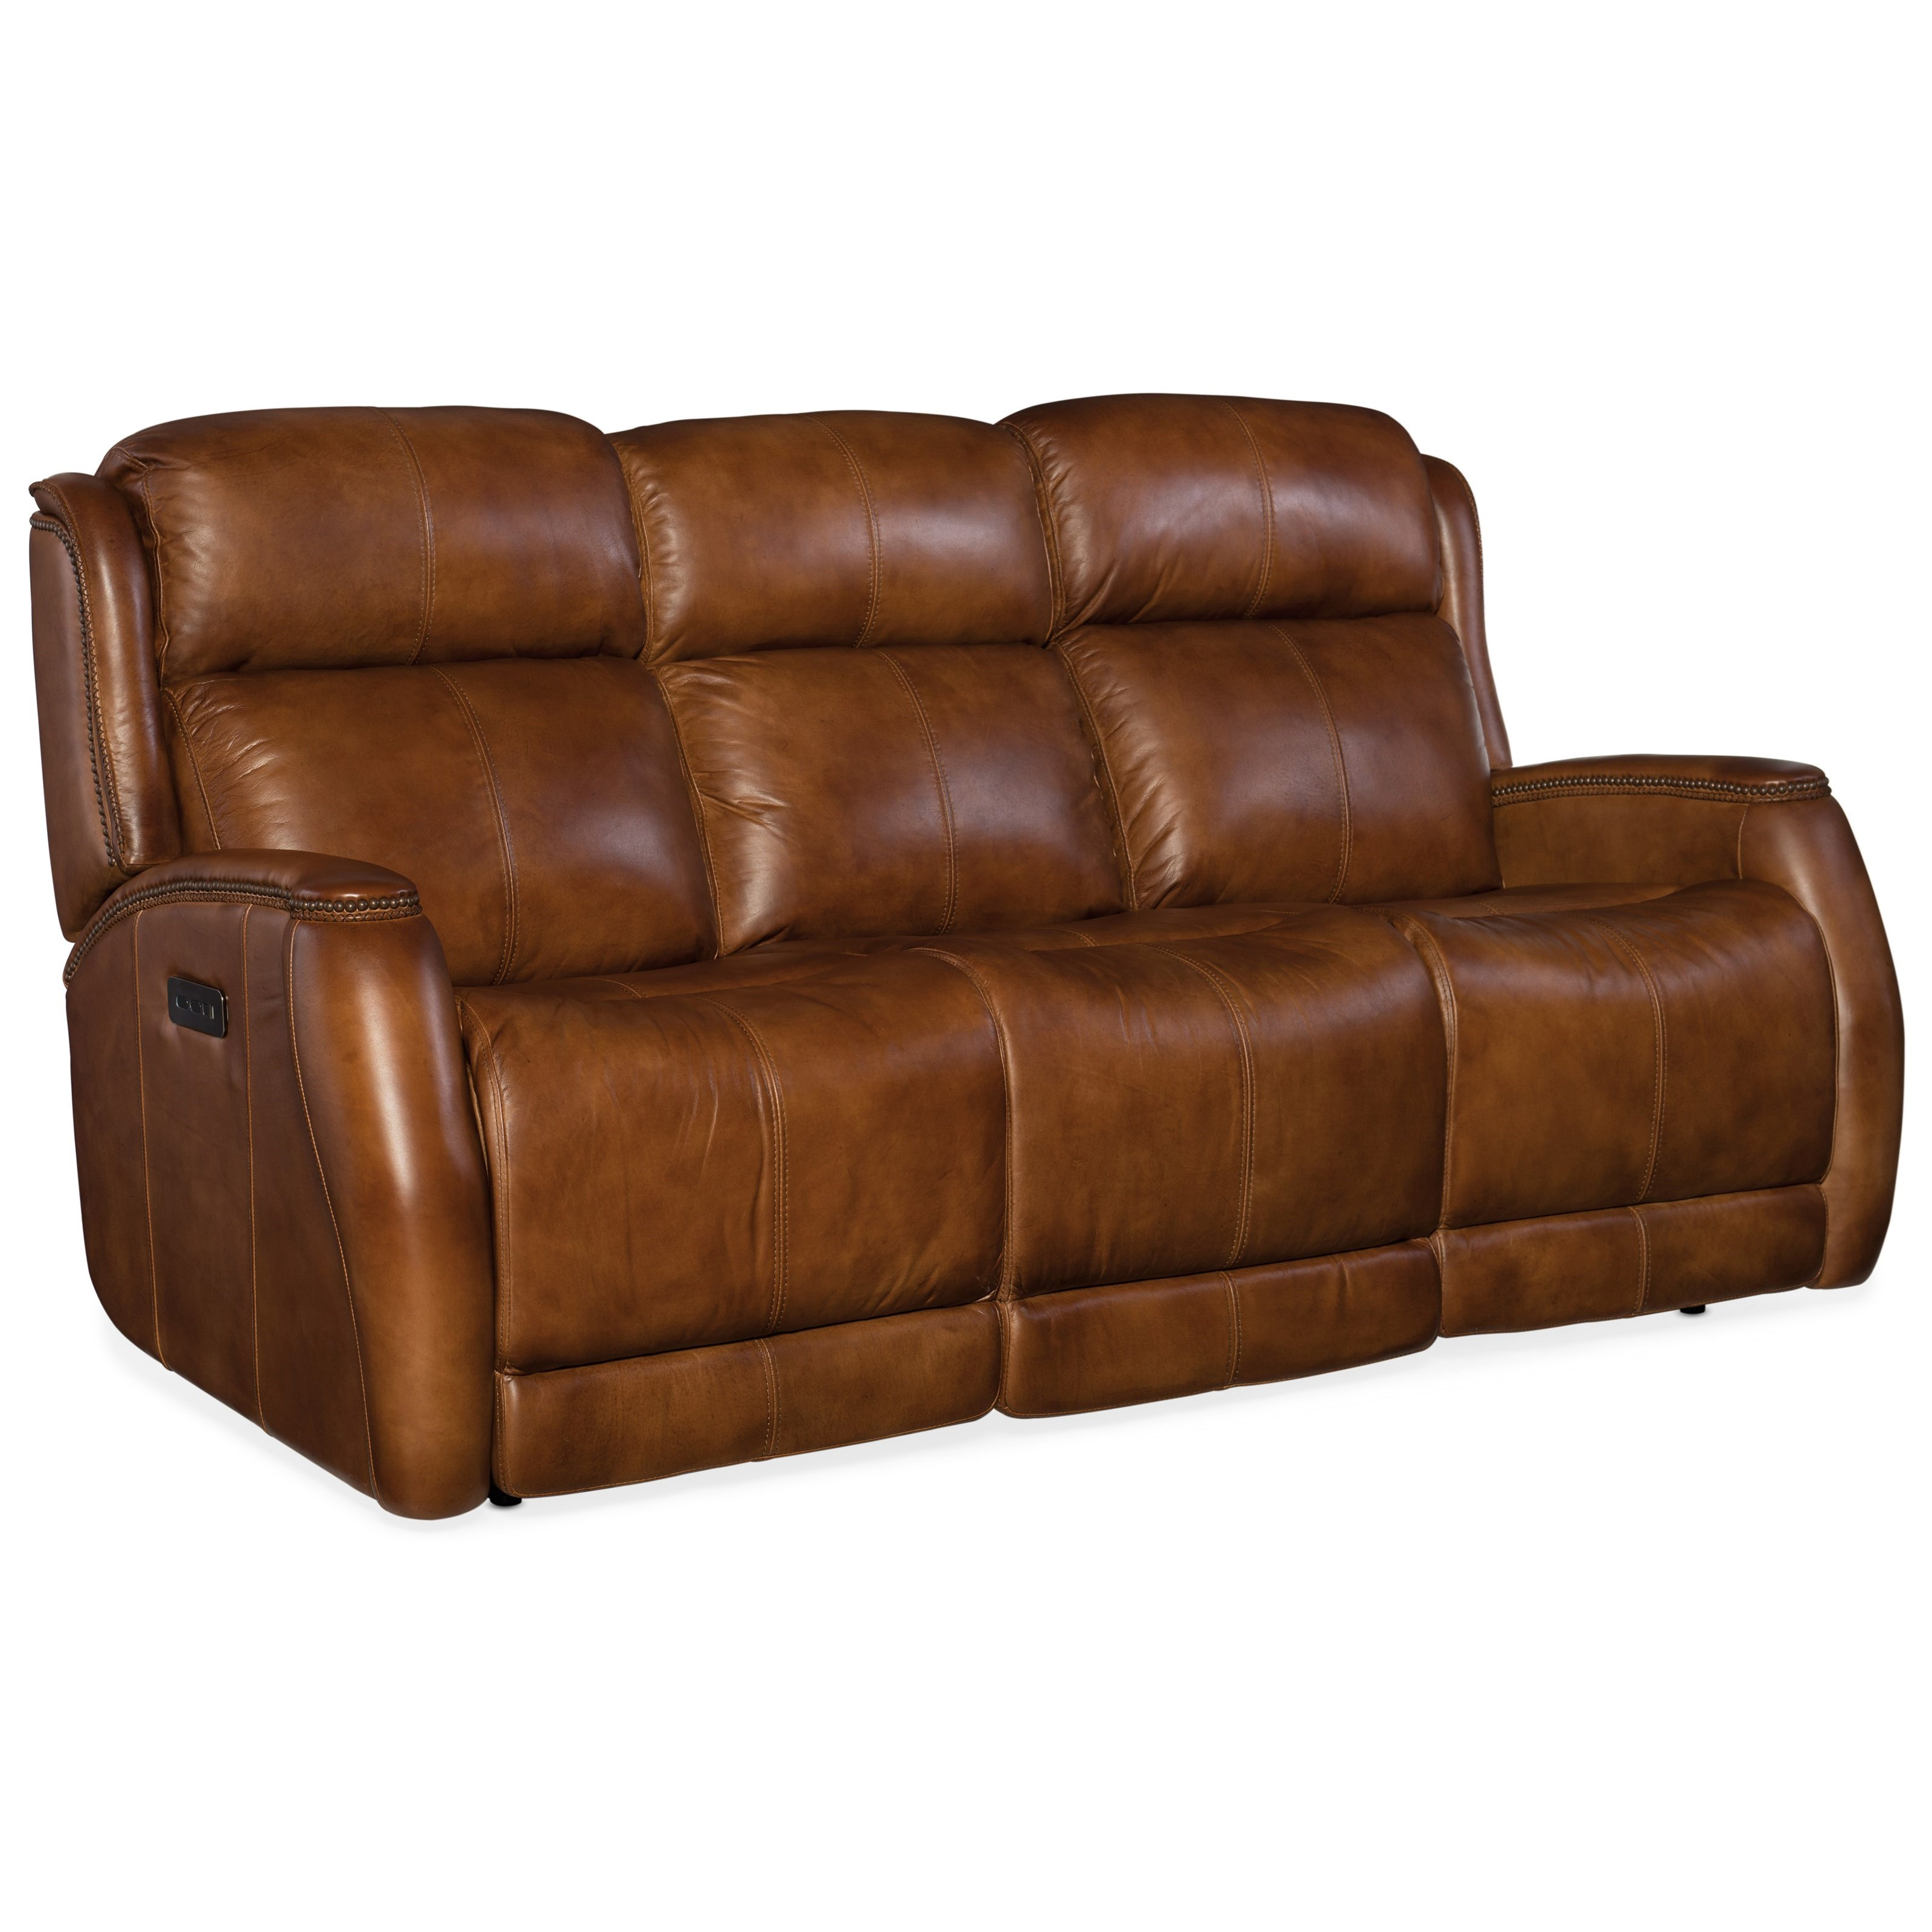 Emerson Power Sofa with Power Headrest by Hooker Furniture at Miller Waldrop Furniture and Decor